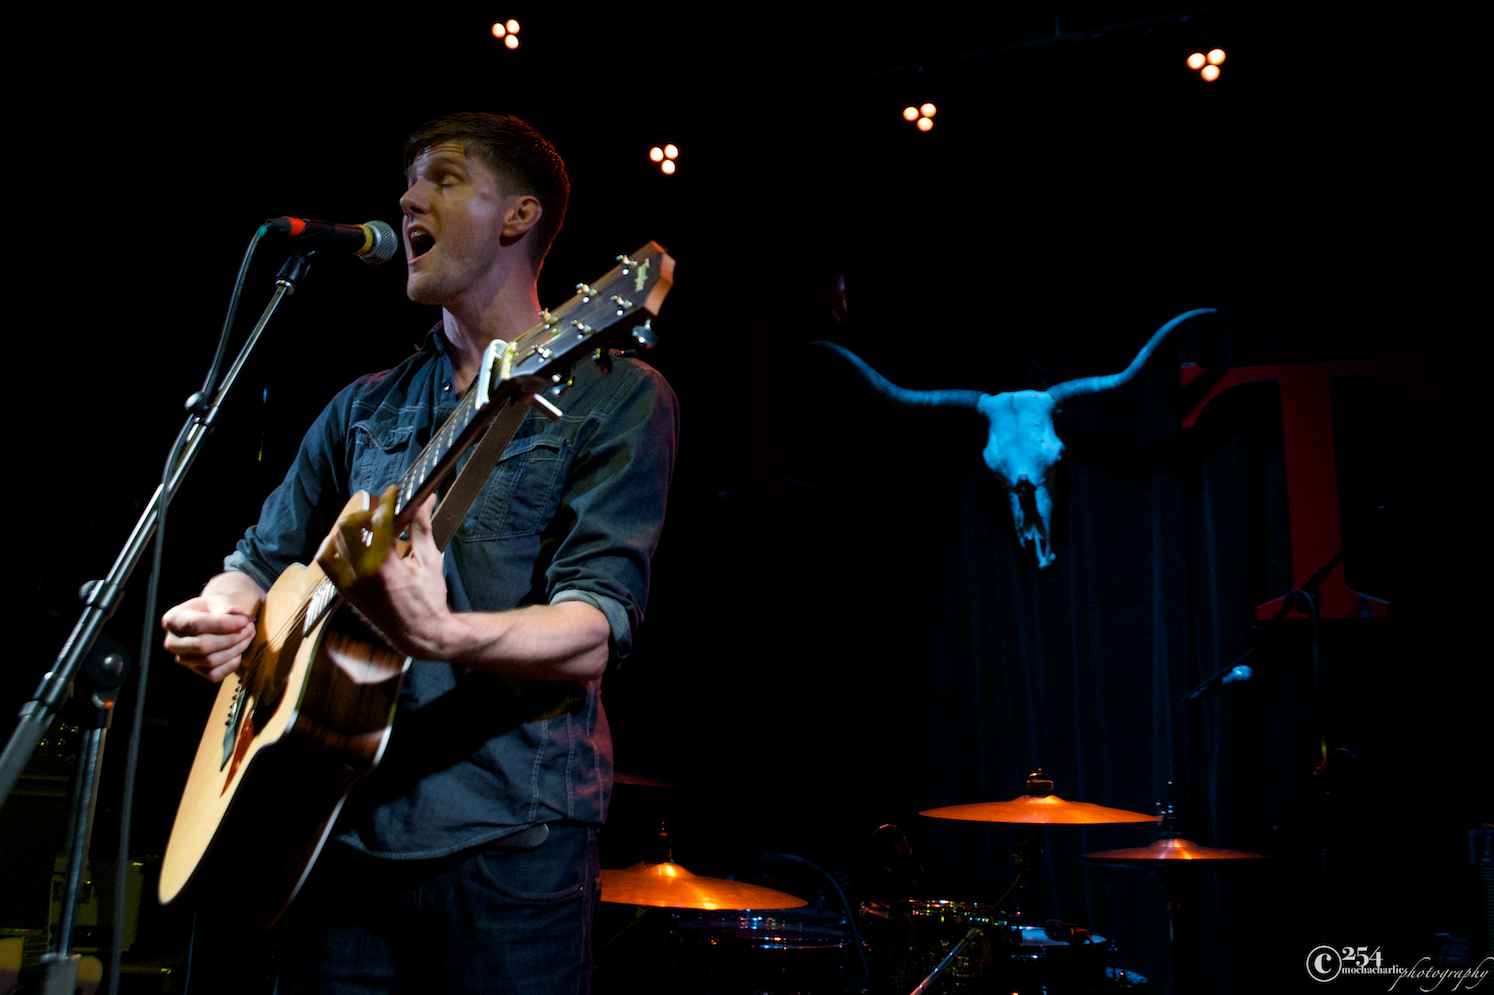 Tommy Simmons at The Tractor Tavern (Photo by Mocha Charlie)